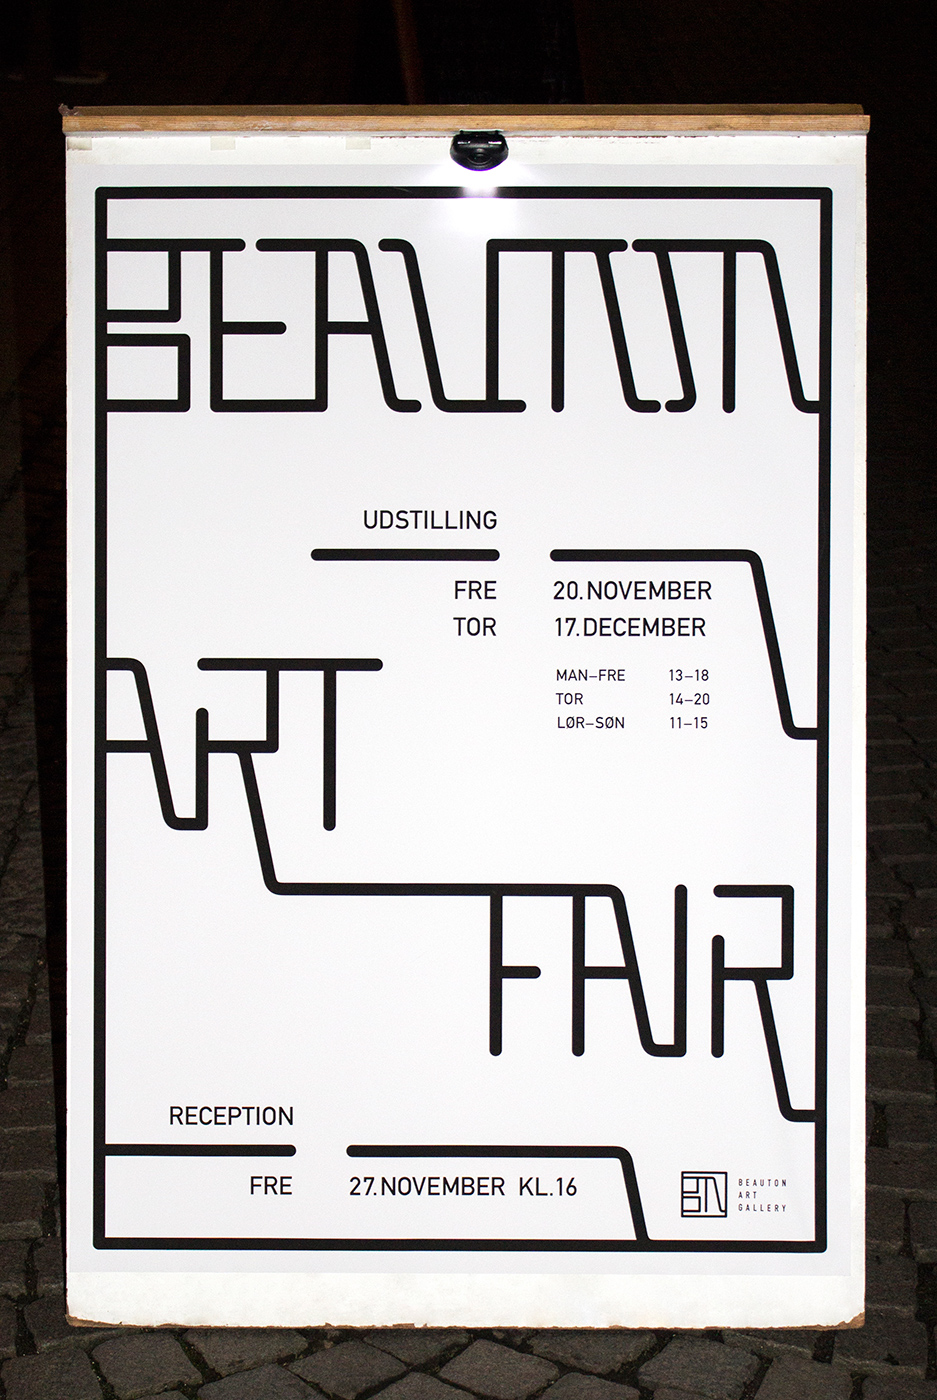 poster design beauton art gallery graphic designer and artist marie brogger